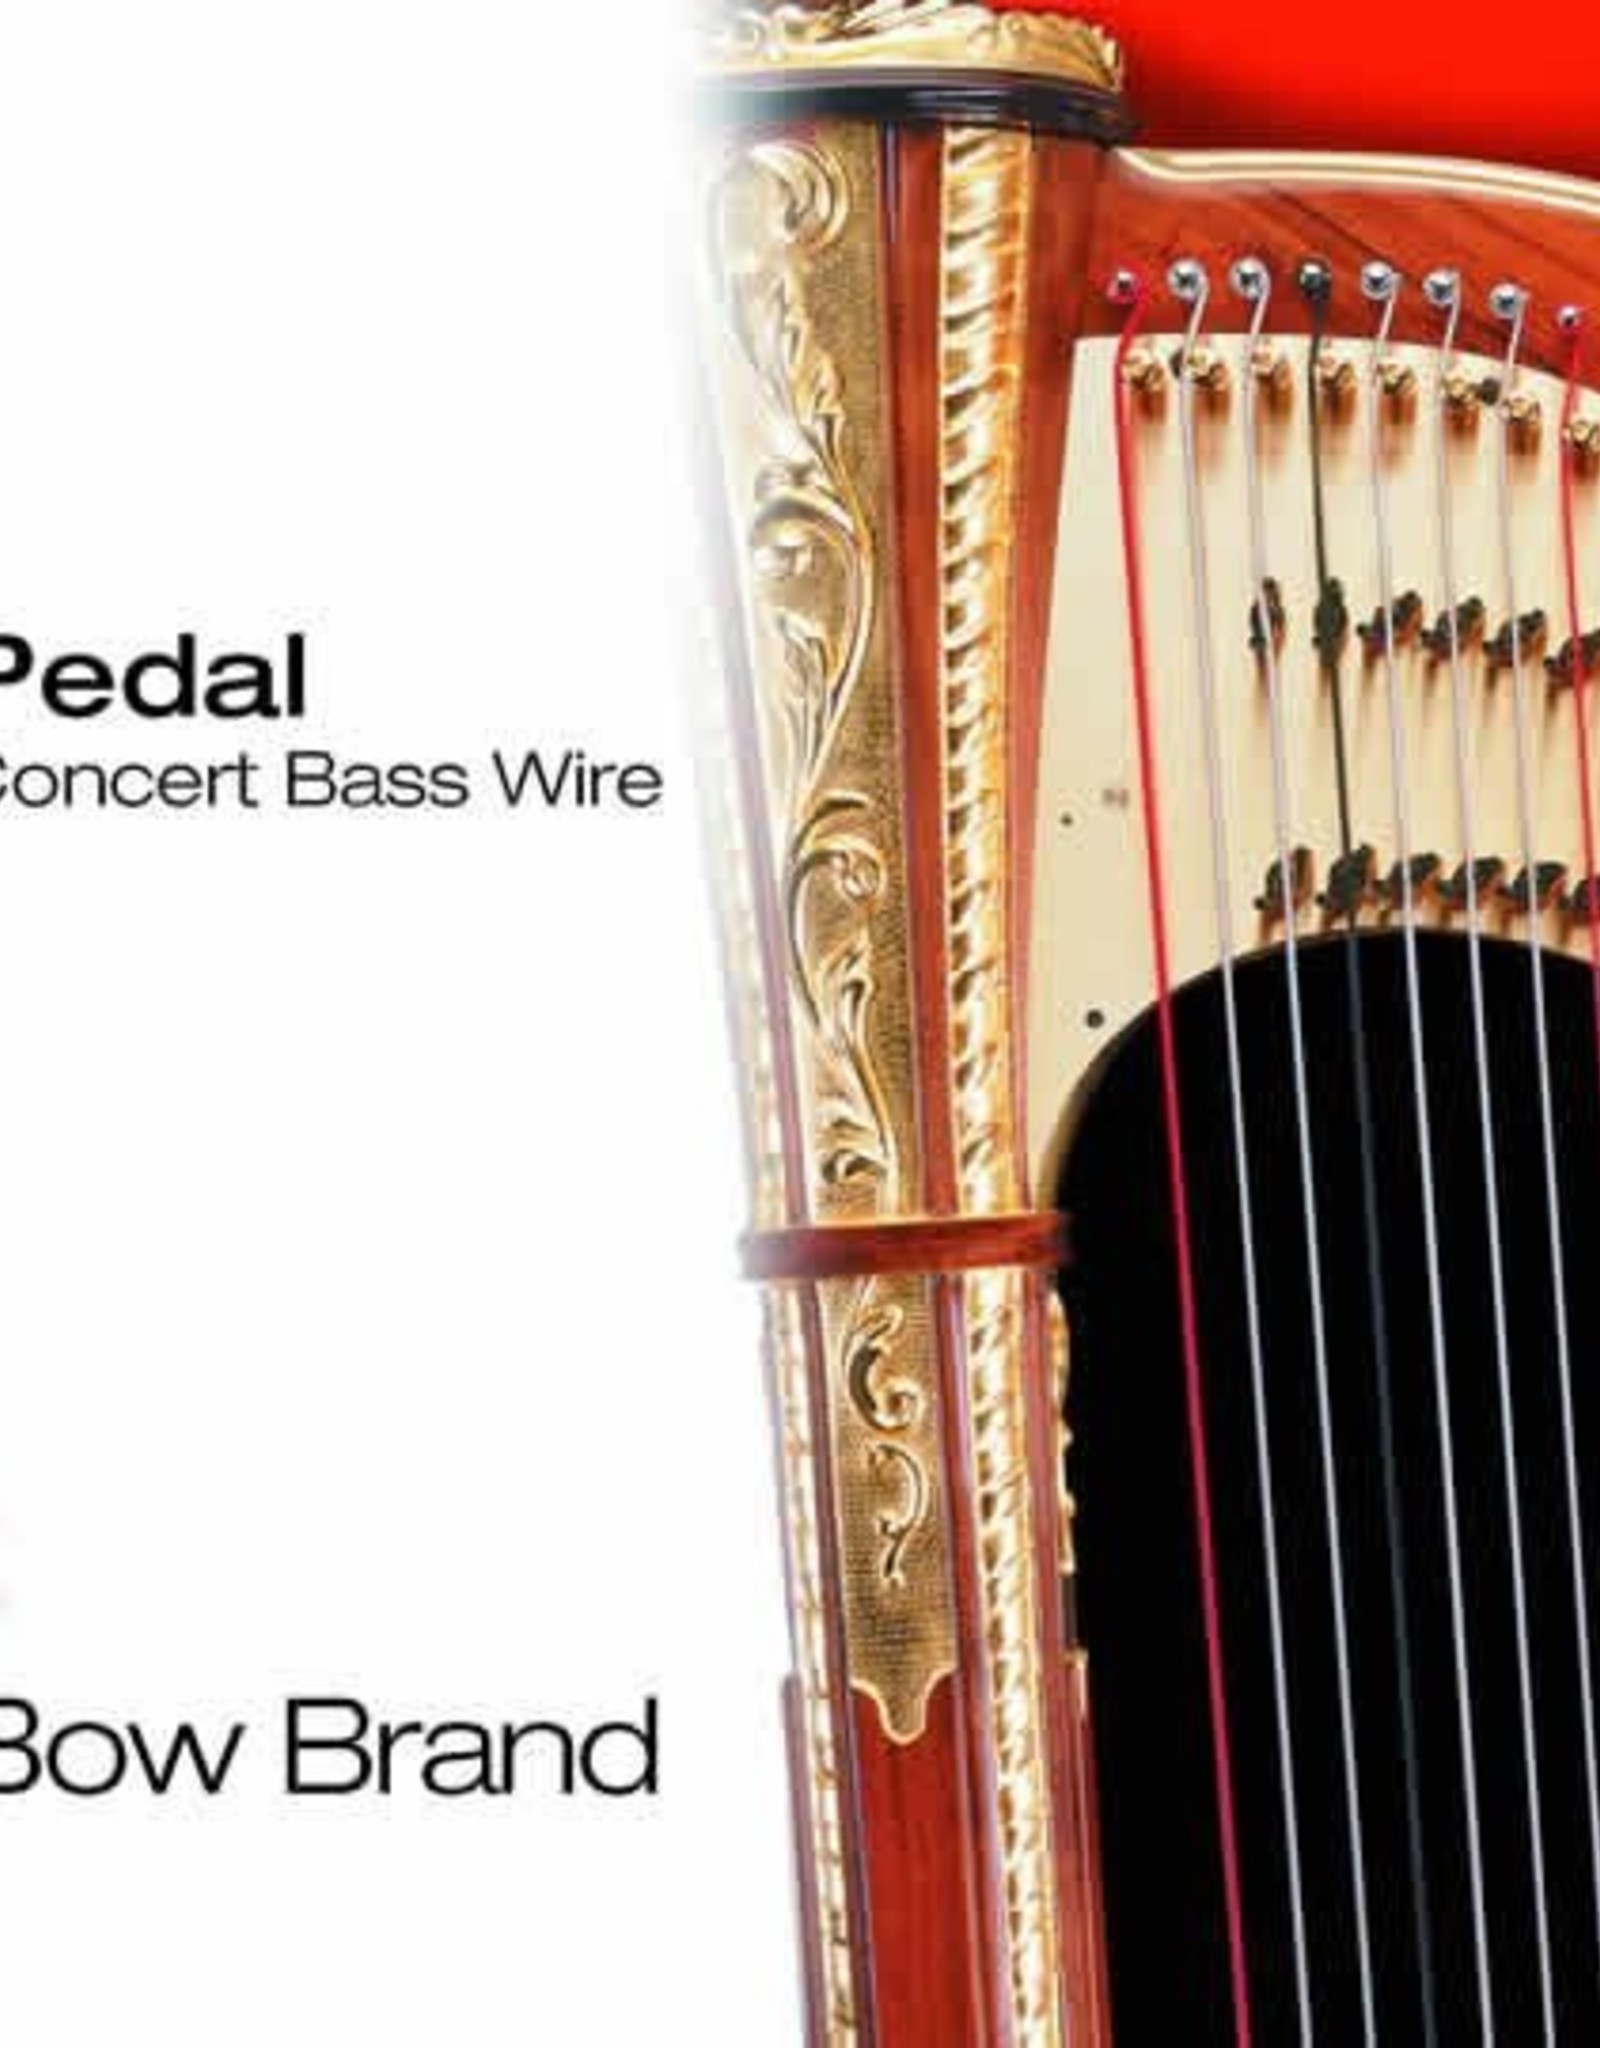 BOW BRAND  pedaal metaal - pedal WIRE 44/7 re